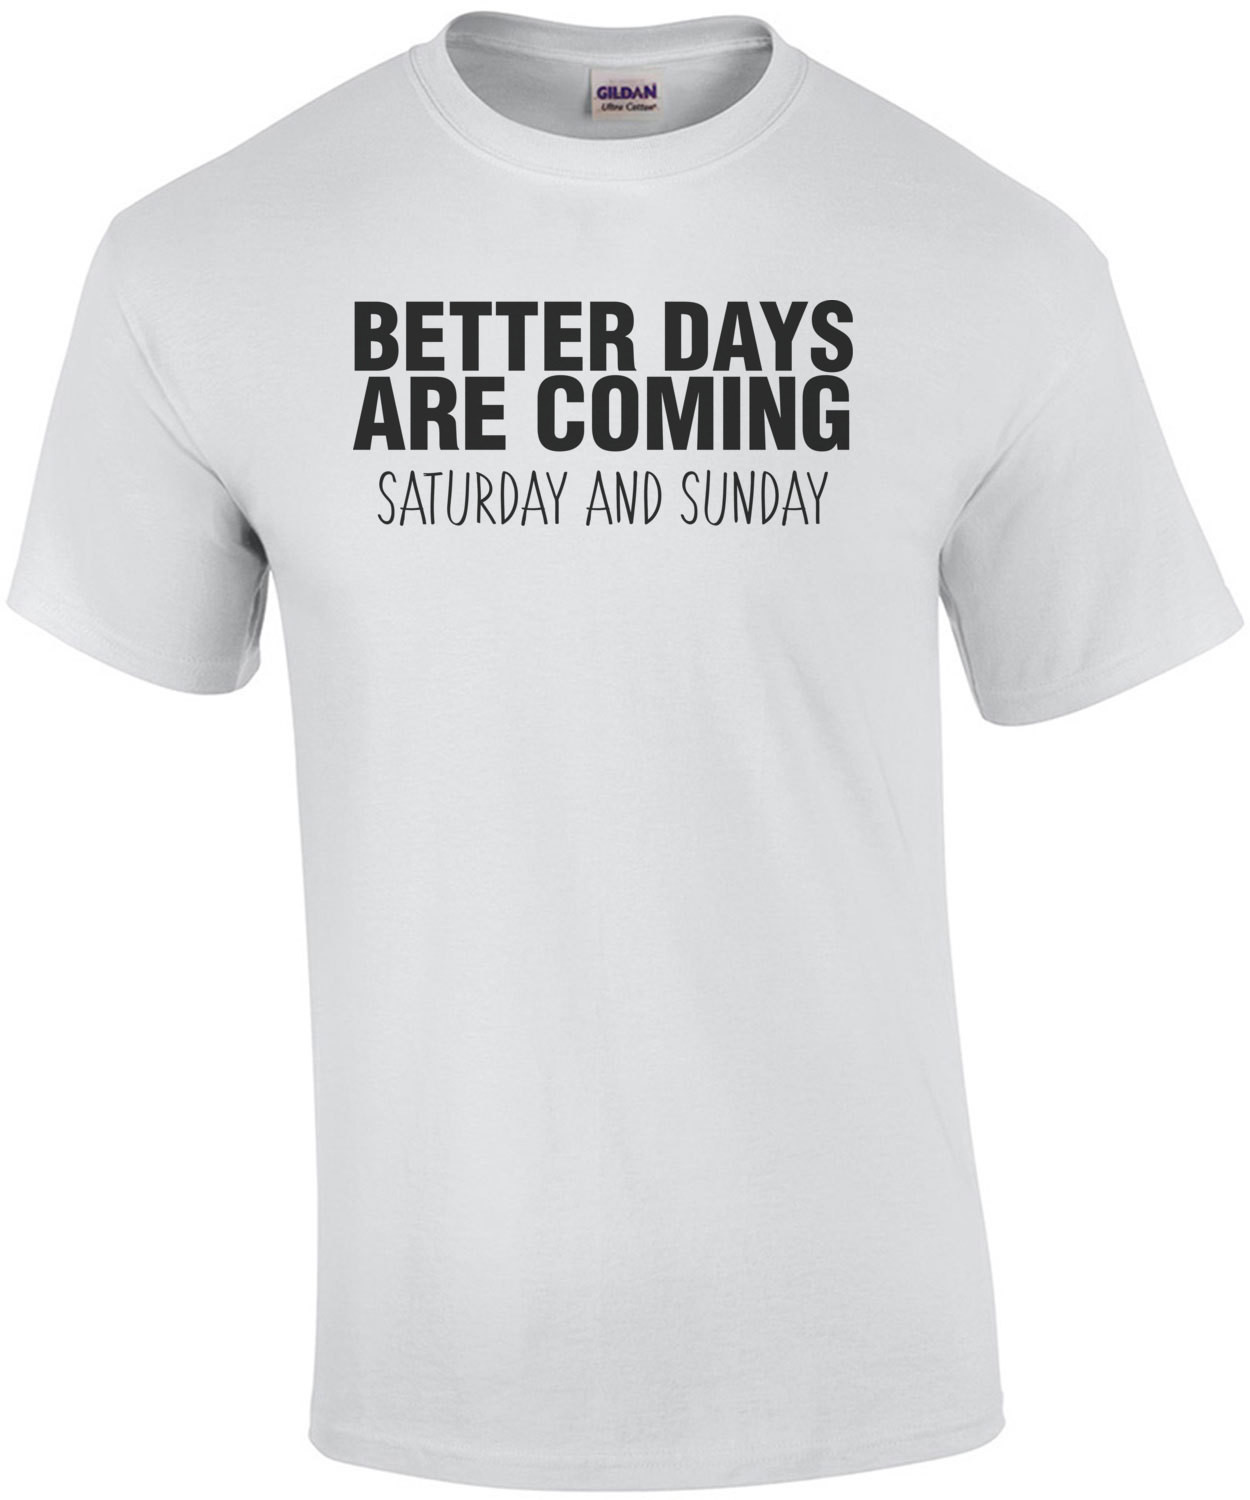 Better Days Are Coming Saturday And Sunday T-Shirt